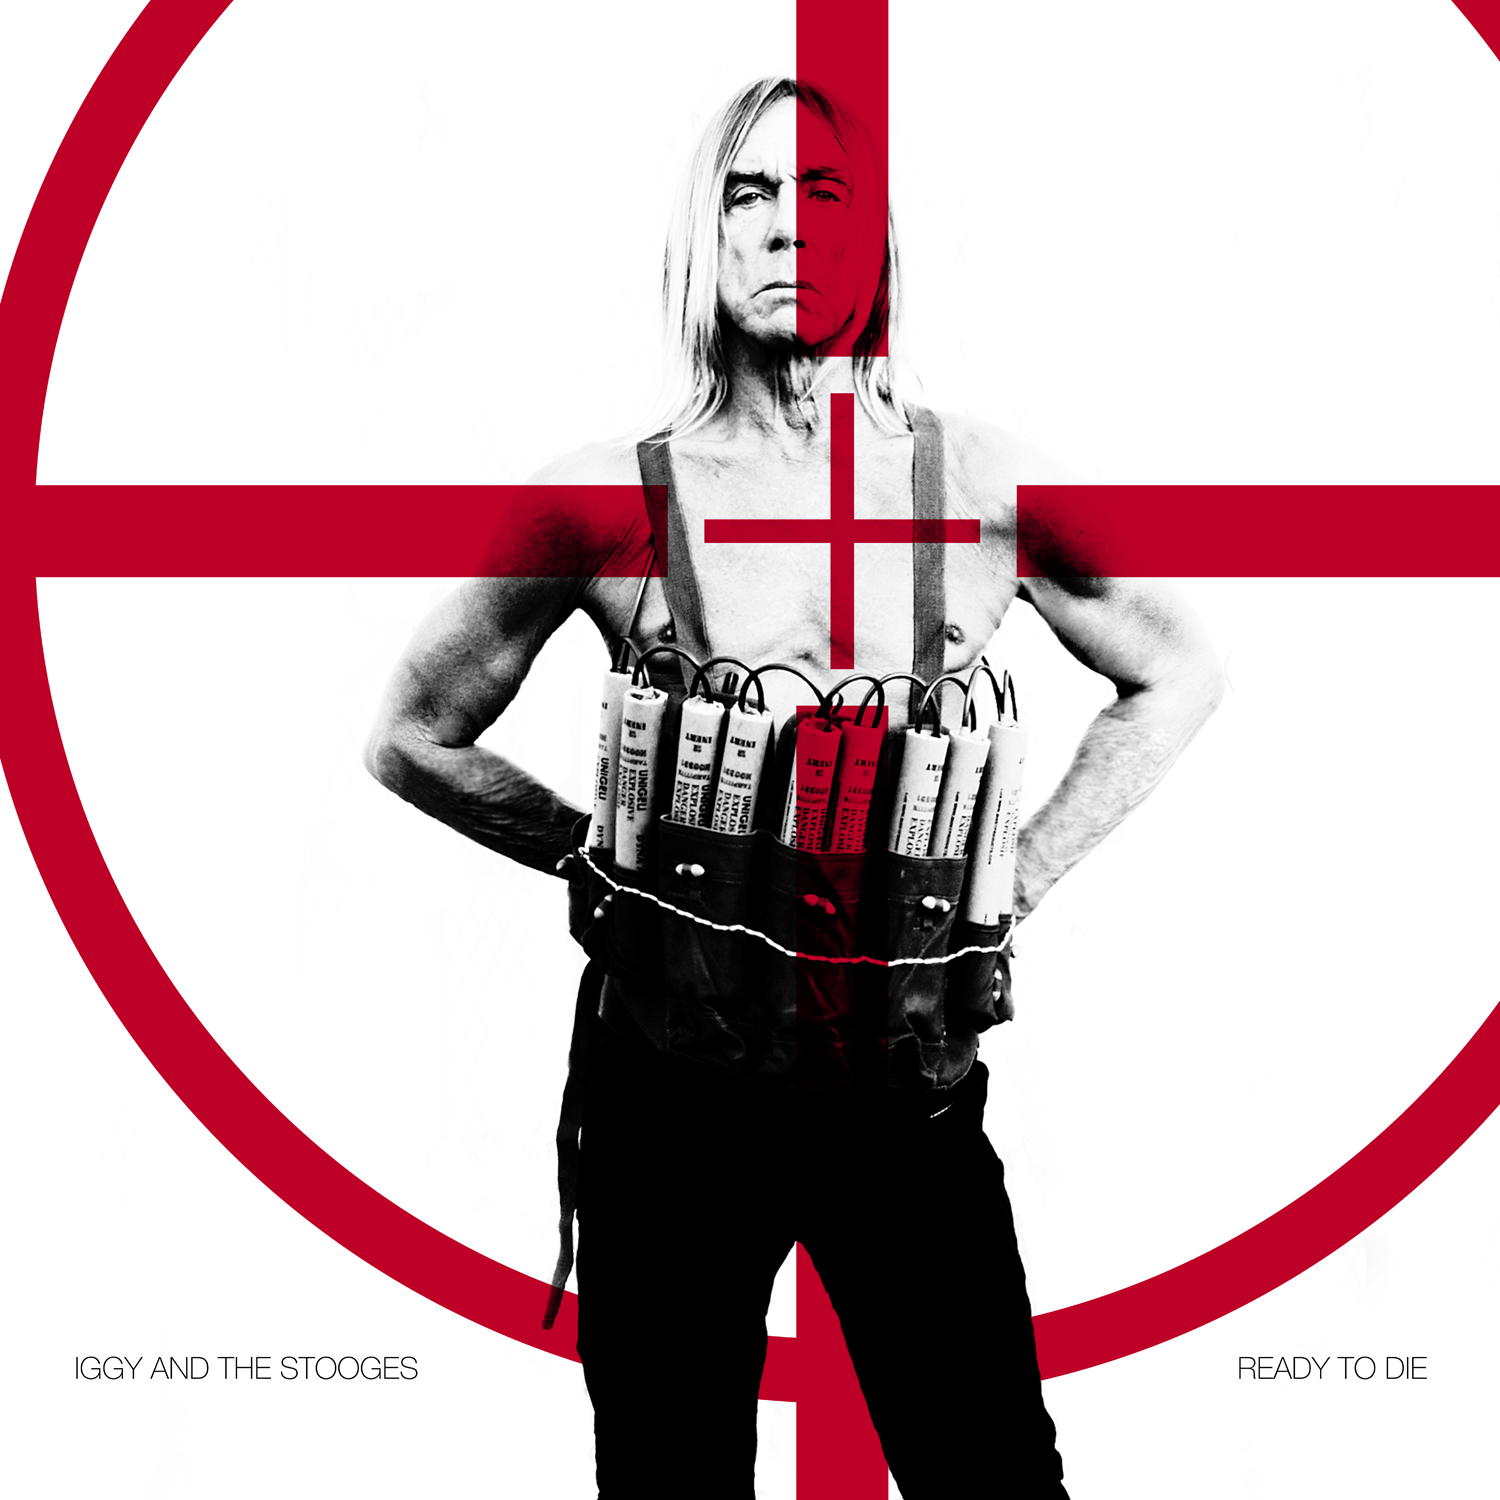 Iggy & The Stooges announce new album, 'Ready To Die'